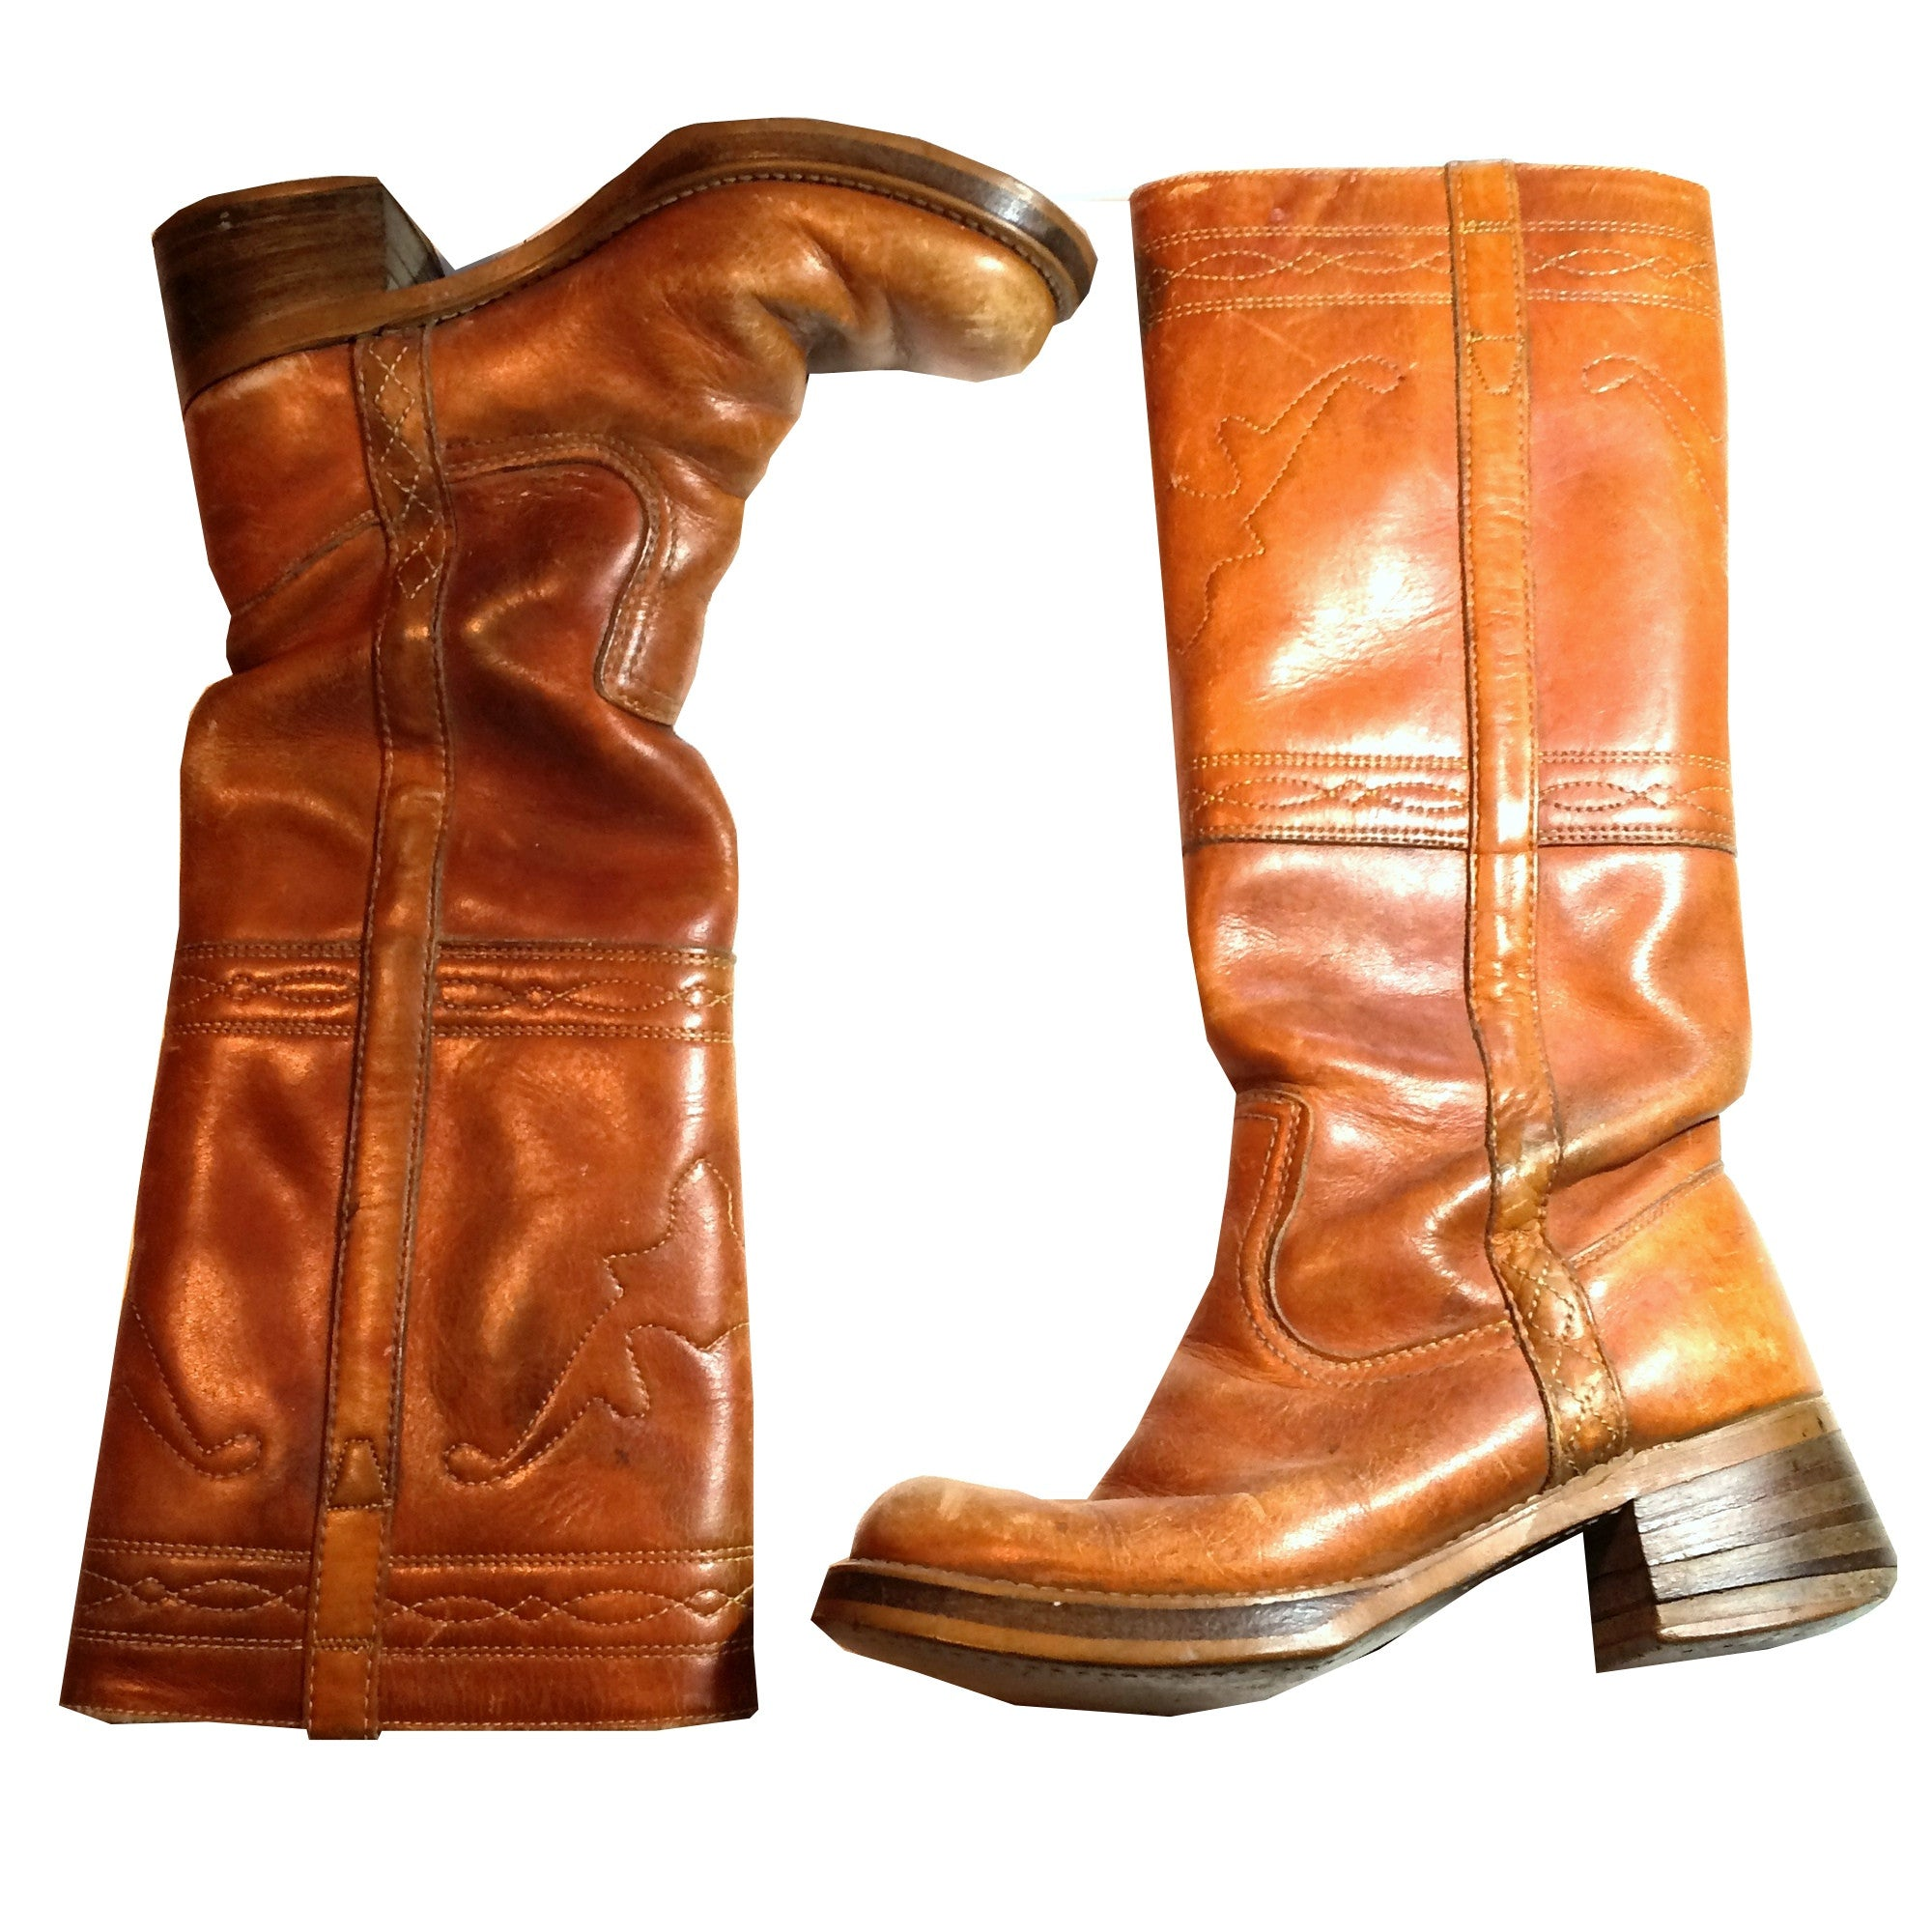 Chic Cinnamon Leather Tall Western Boots w/ Top Stitching circa 1970s Dorothea's Closet Vintage Clothing